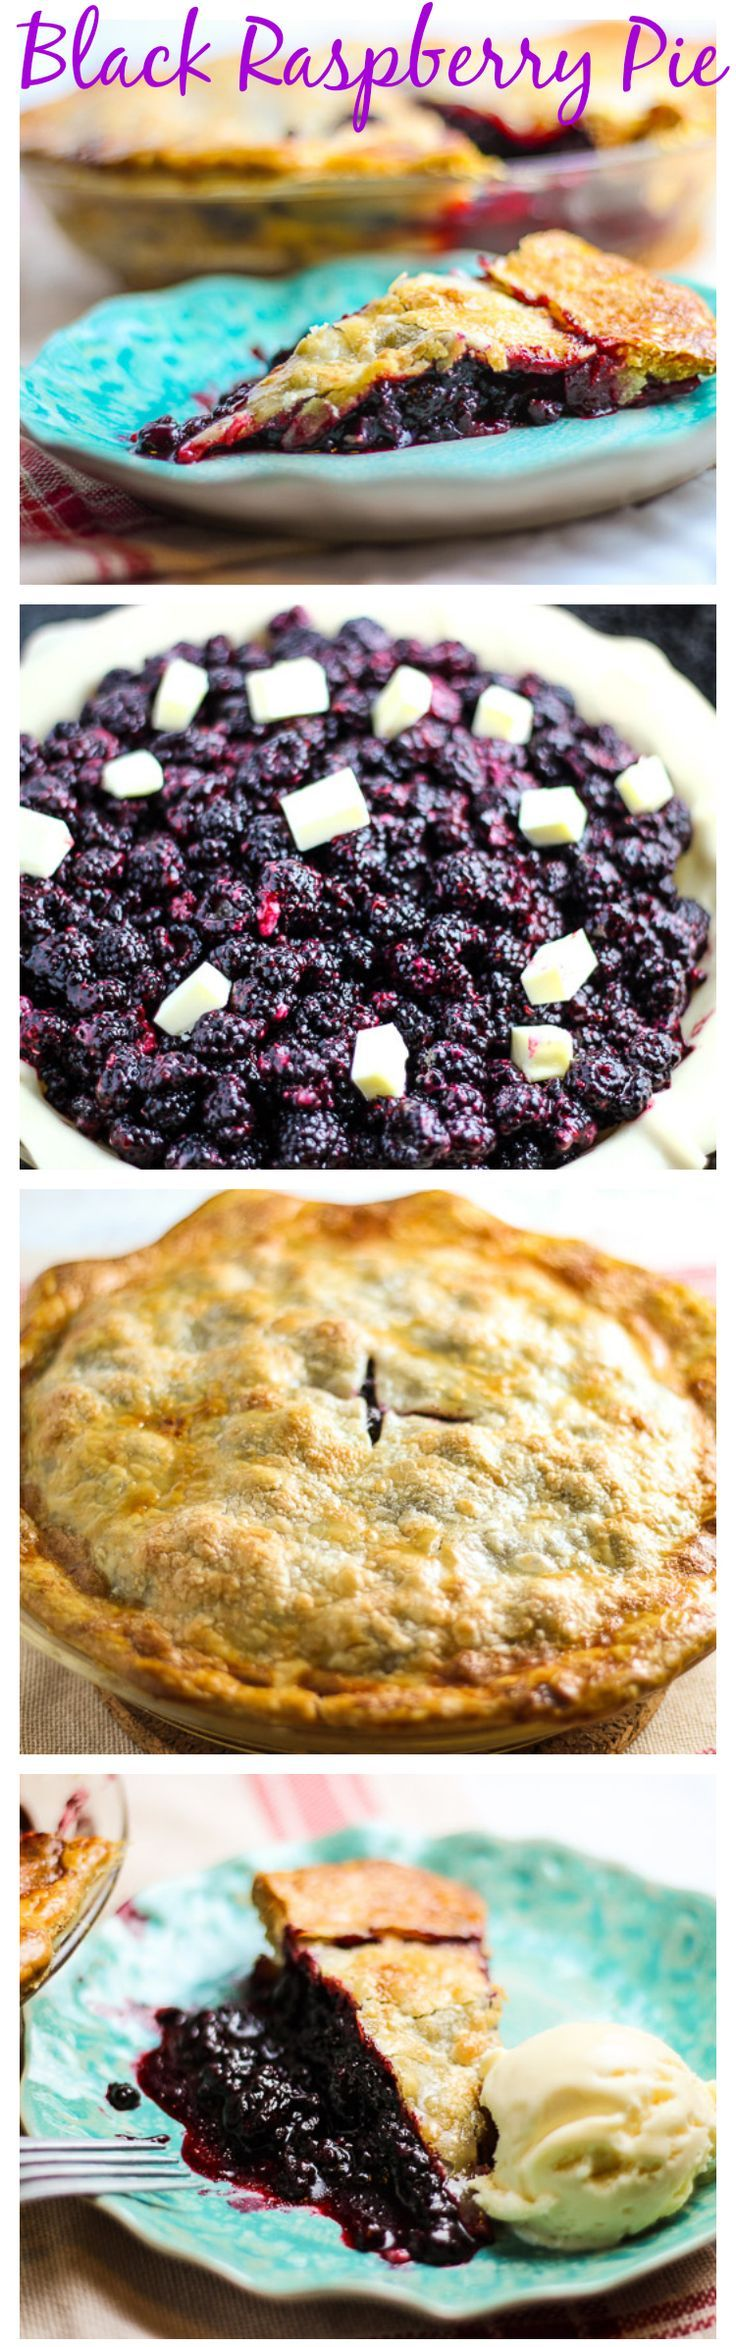 Black raspberries in this luscious black raspberry pie make this a tart and sweet dessert that's super simple to make too.